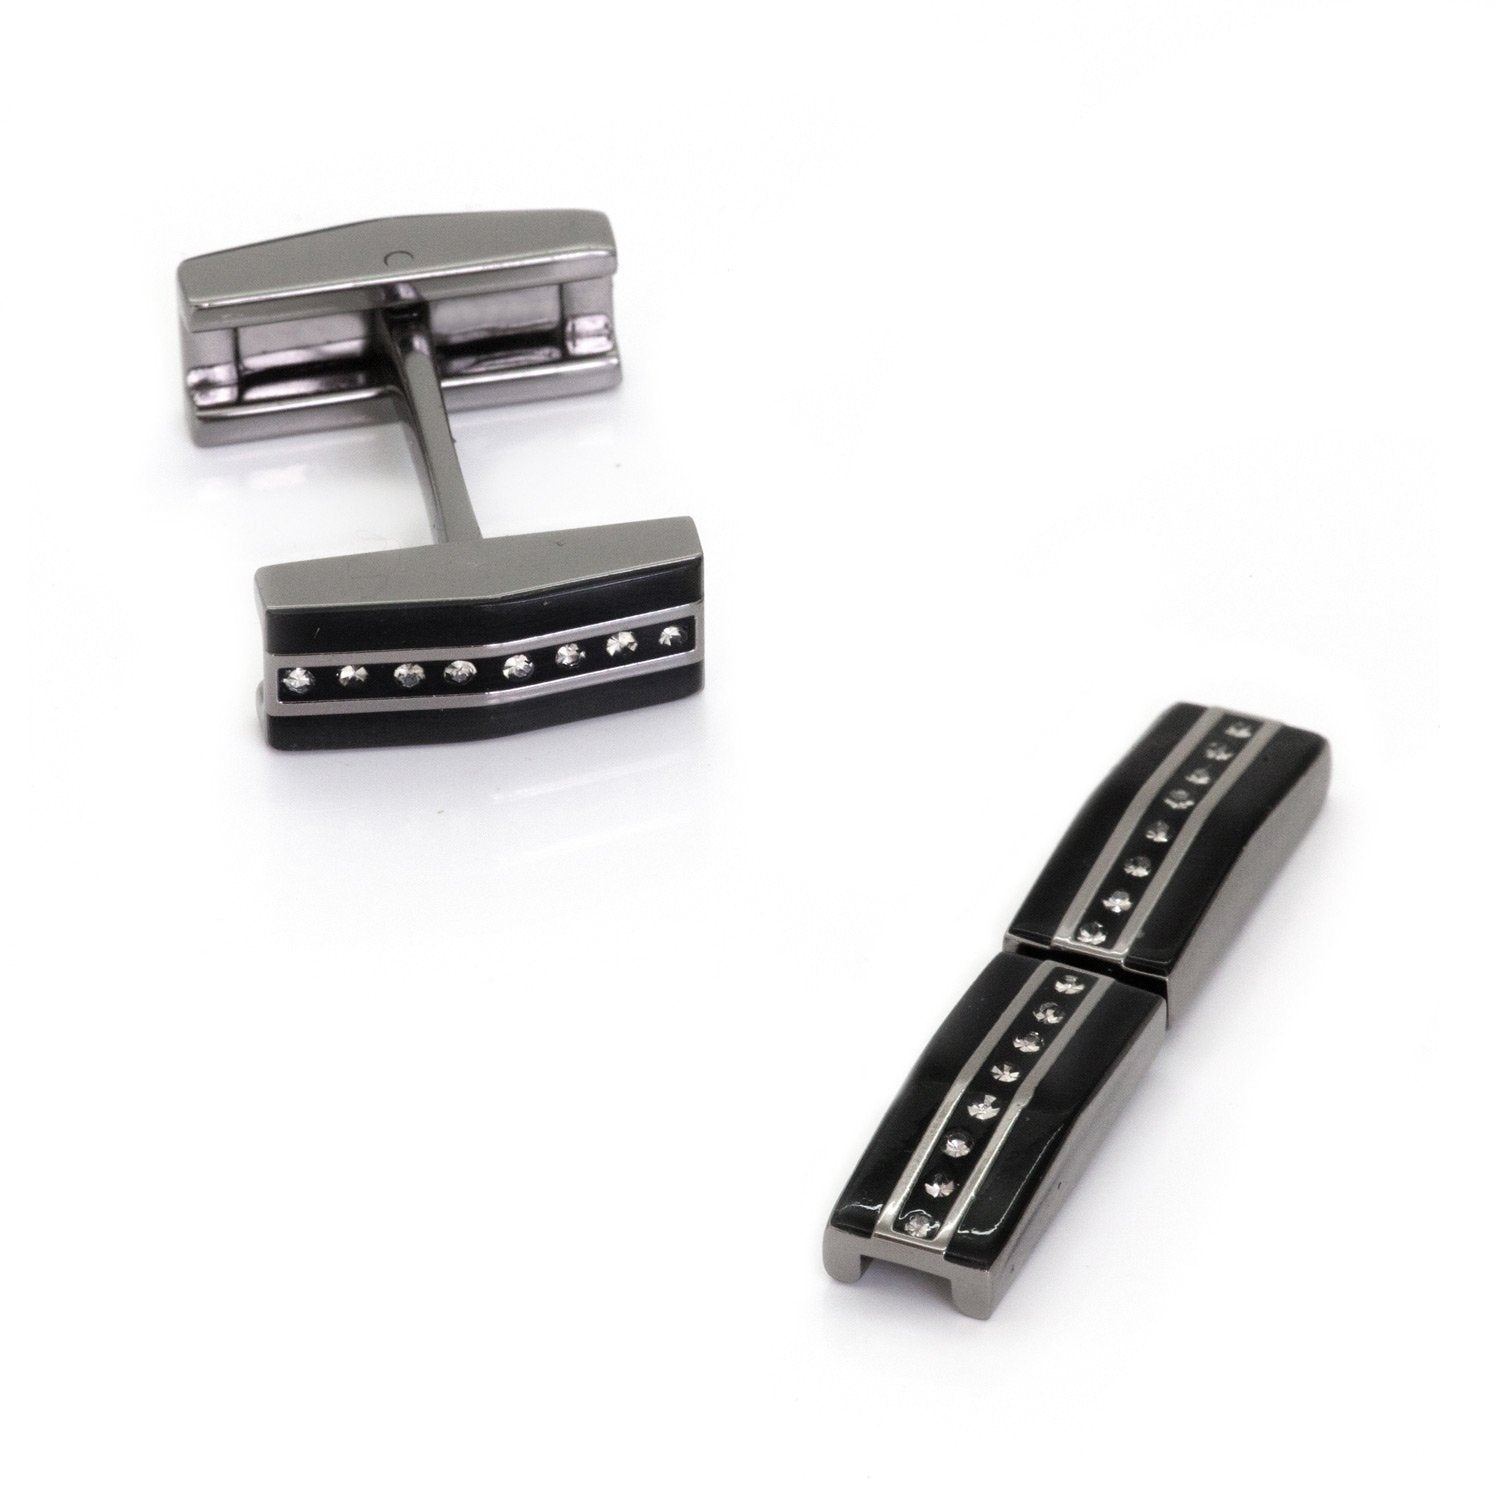 Black Gunmetal and Crystal Fold Flat Cufflinks Classic & Modern Cufflinks Clinks Australia Black, Gunmetal and Crystal Fold Flat Cufflinks